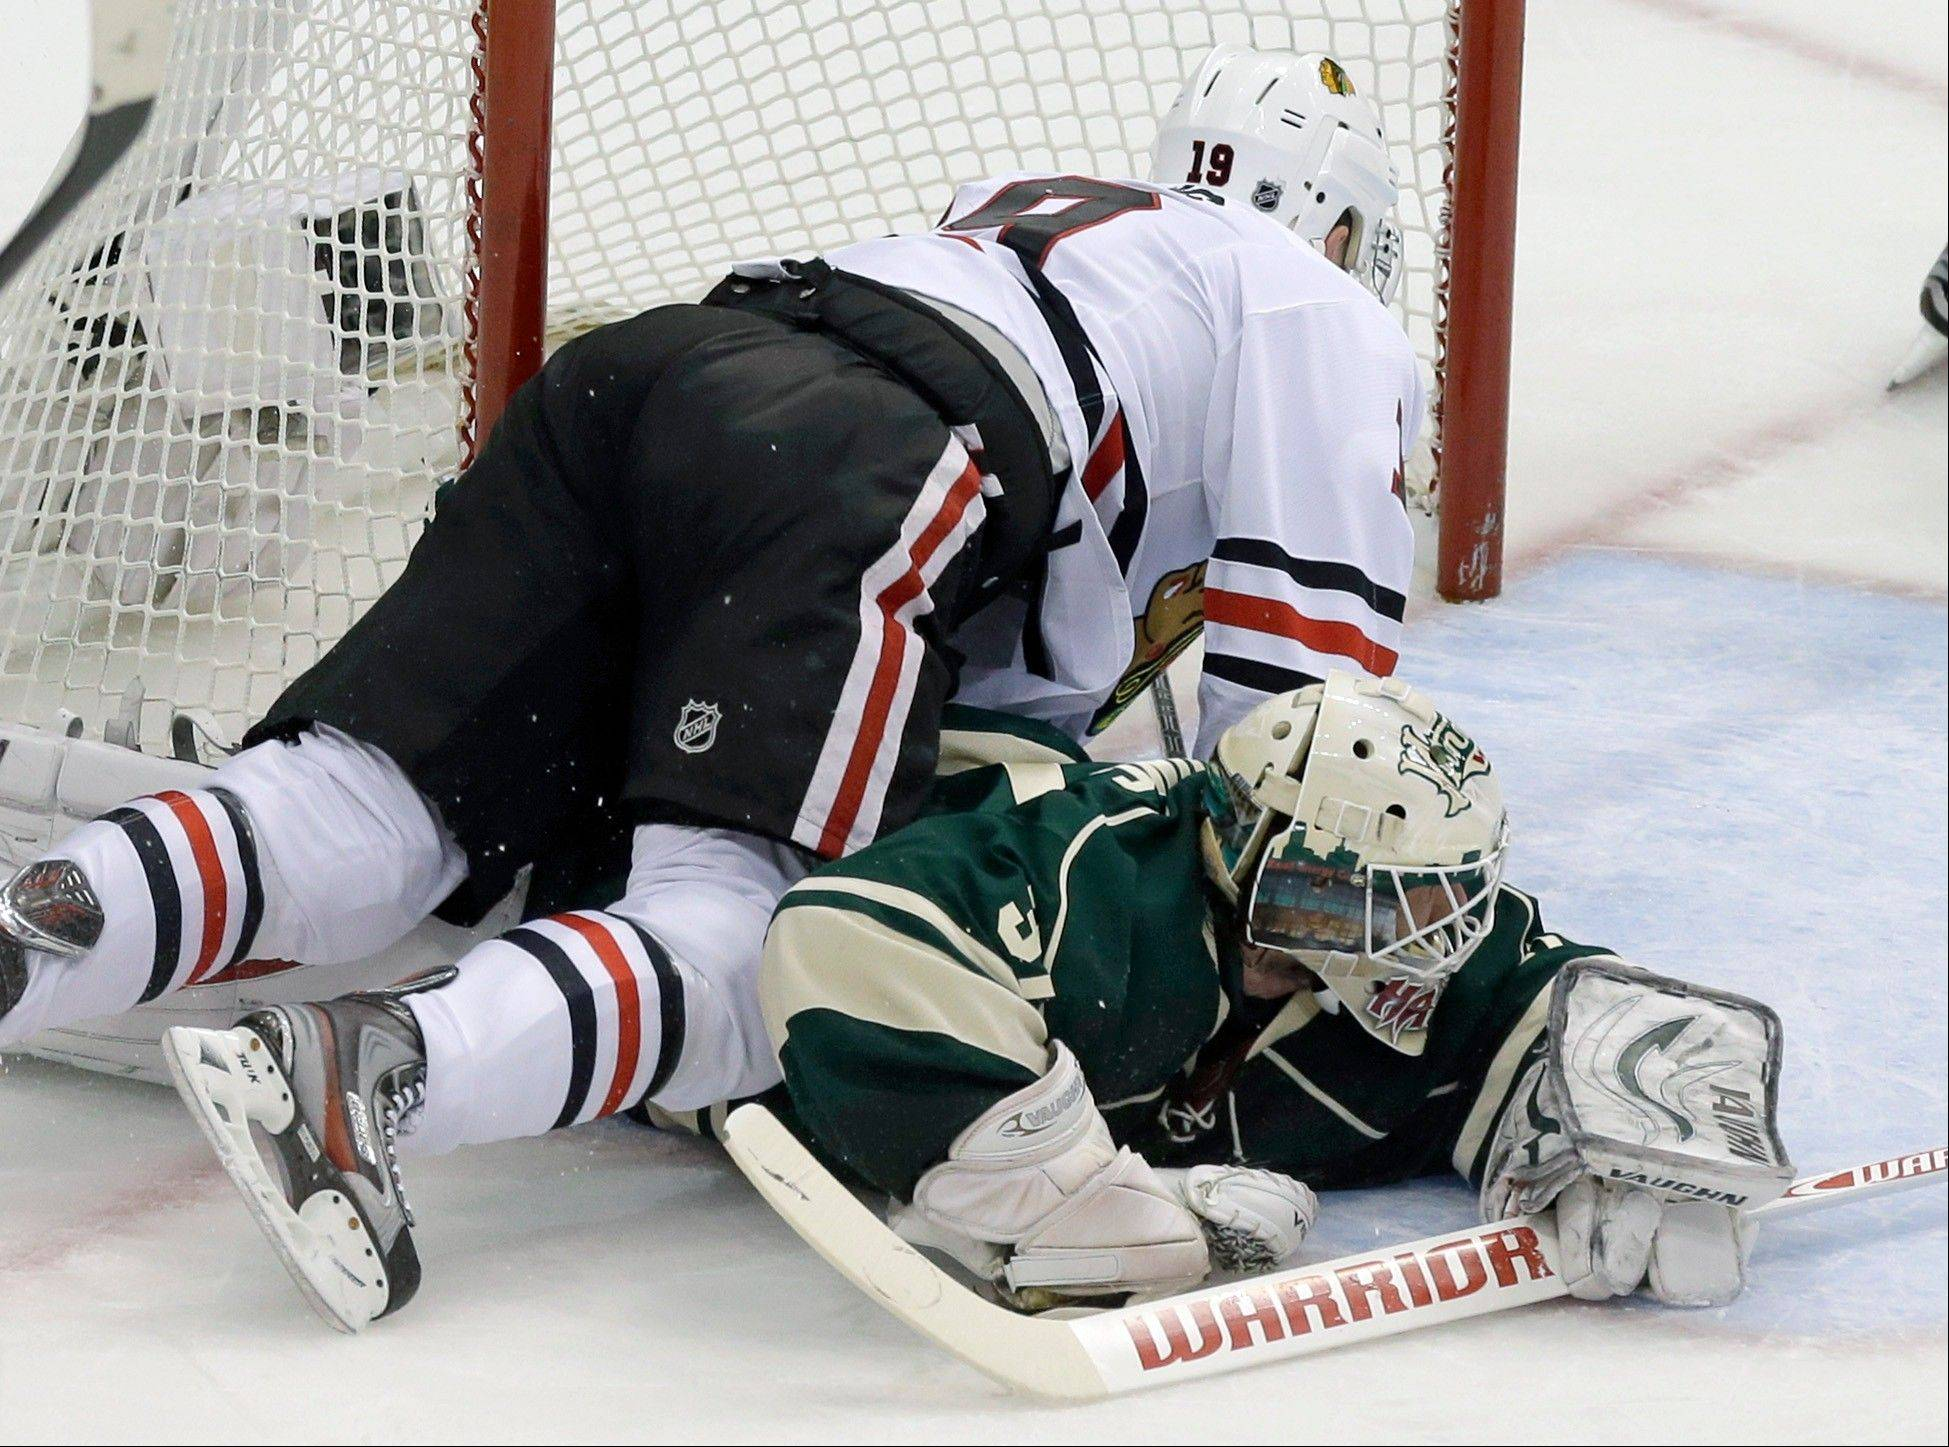 Chicago Blackhawks' Jonathan Toews, left, falls on Minnesota Wild goalie Josh Harding as Harding stoped a shot by Toews in the first period of Game 4 of an NHL hockey Stanley Cup playoff series, Tuesday, May 7, 2013 in St. Paul, Minn. Harding was injured on the play and left the game after the first period.